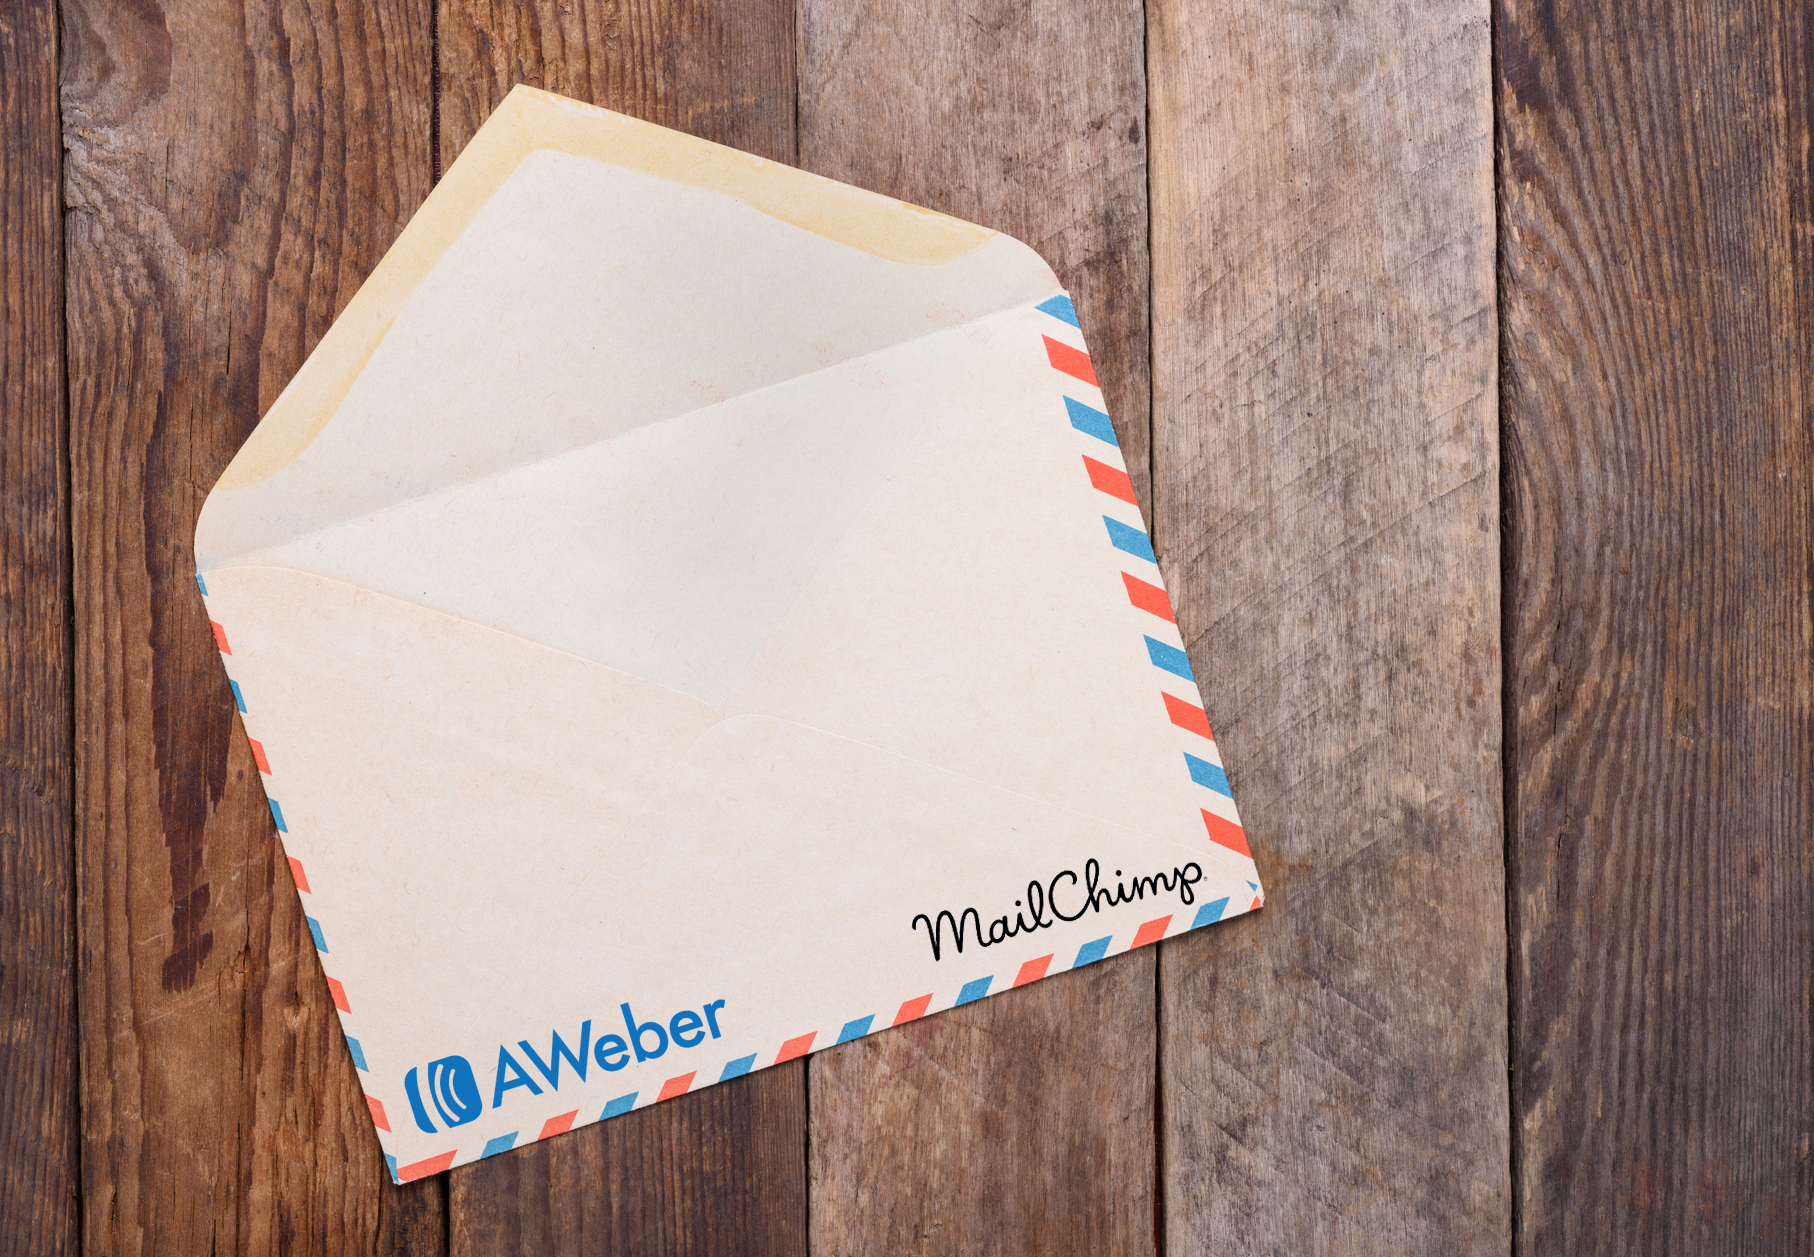 Amazon Offer Aweber Email Marketing March 2020